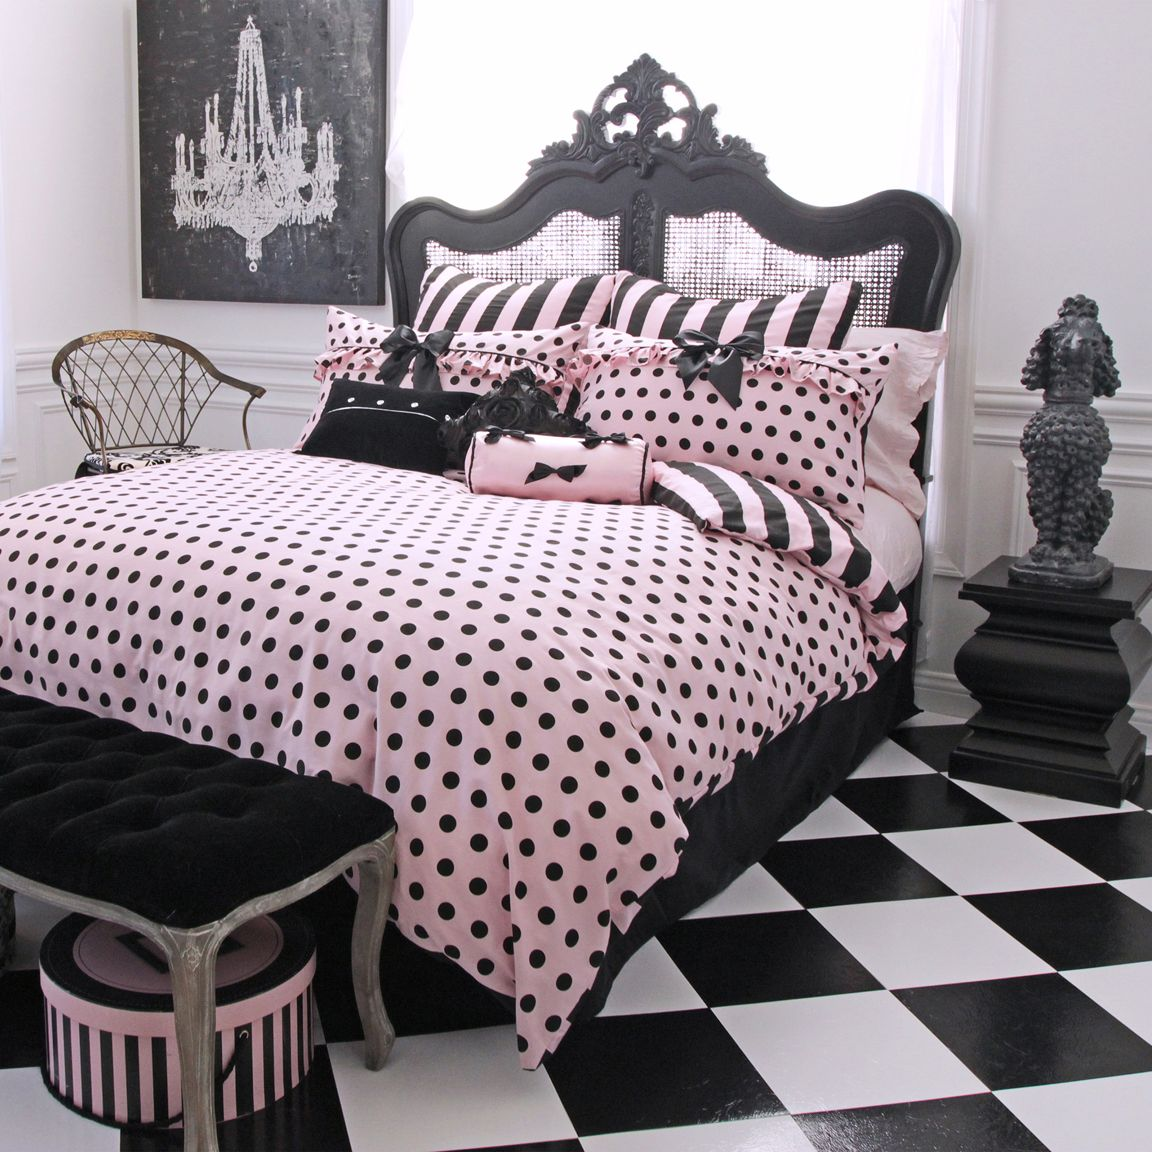 Black and pink bed sheets - Sometimes We Enter In This Room And We Lay On The Bed With Hours Black And Pink Bedroom